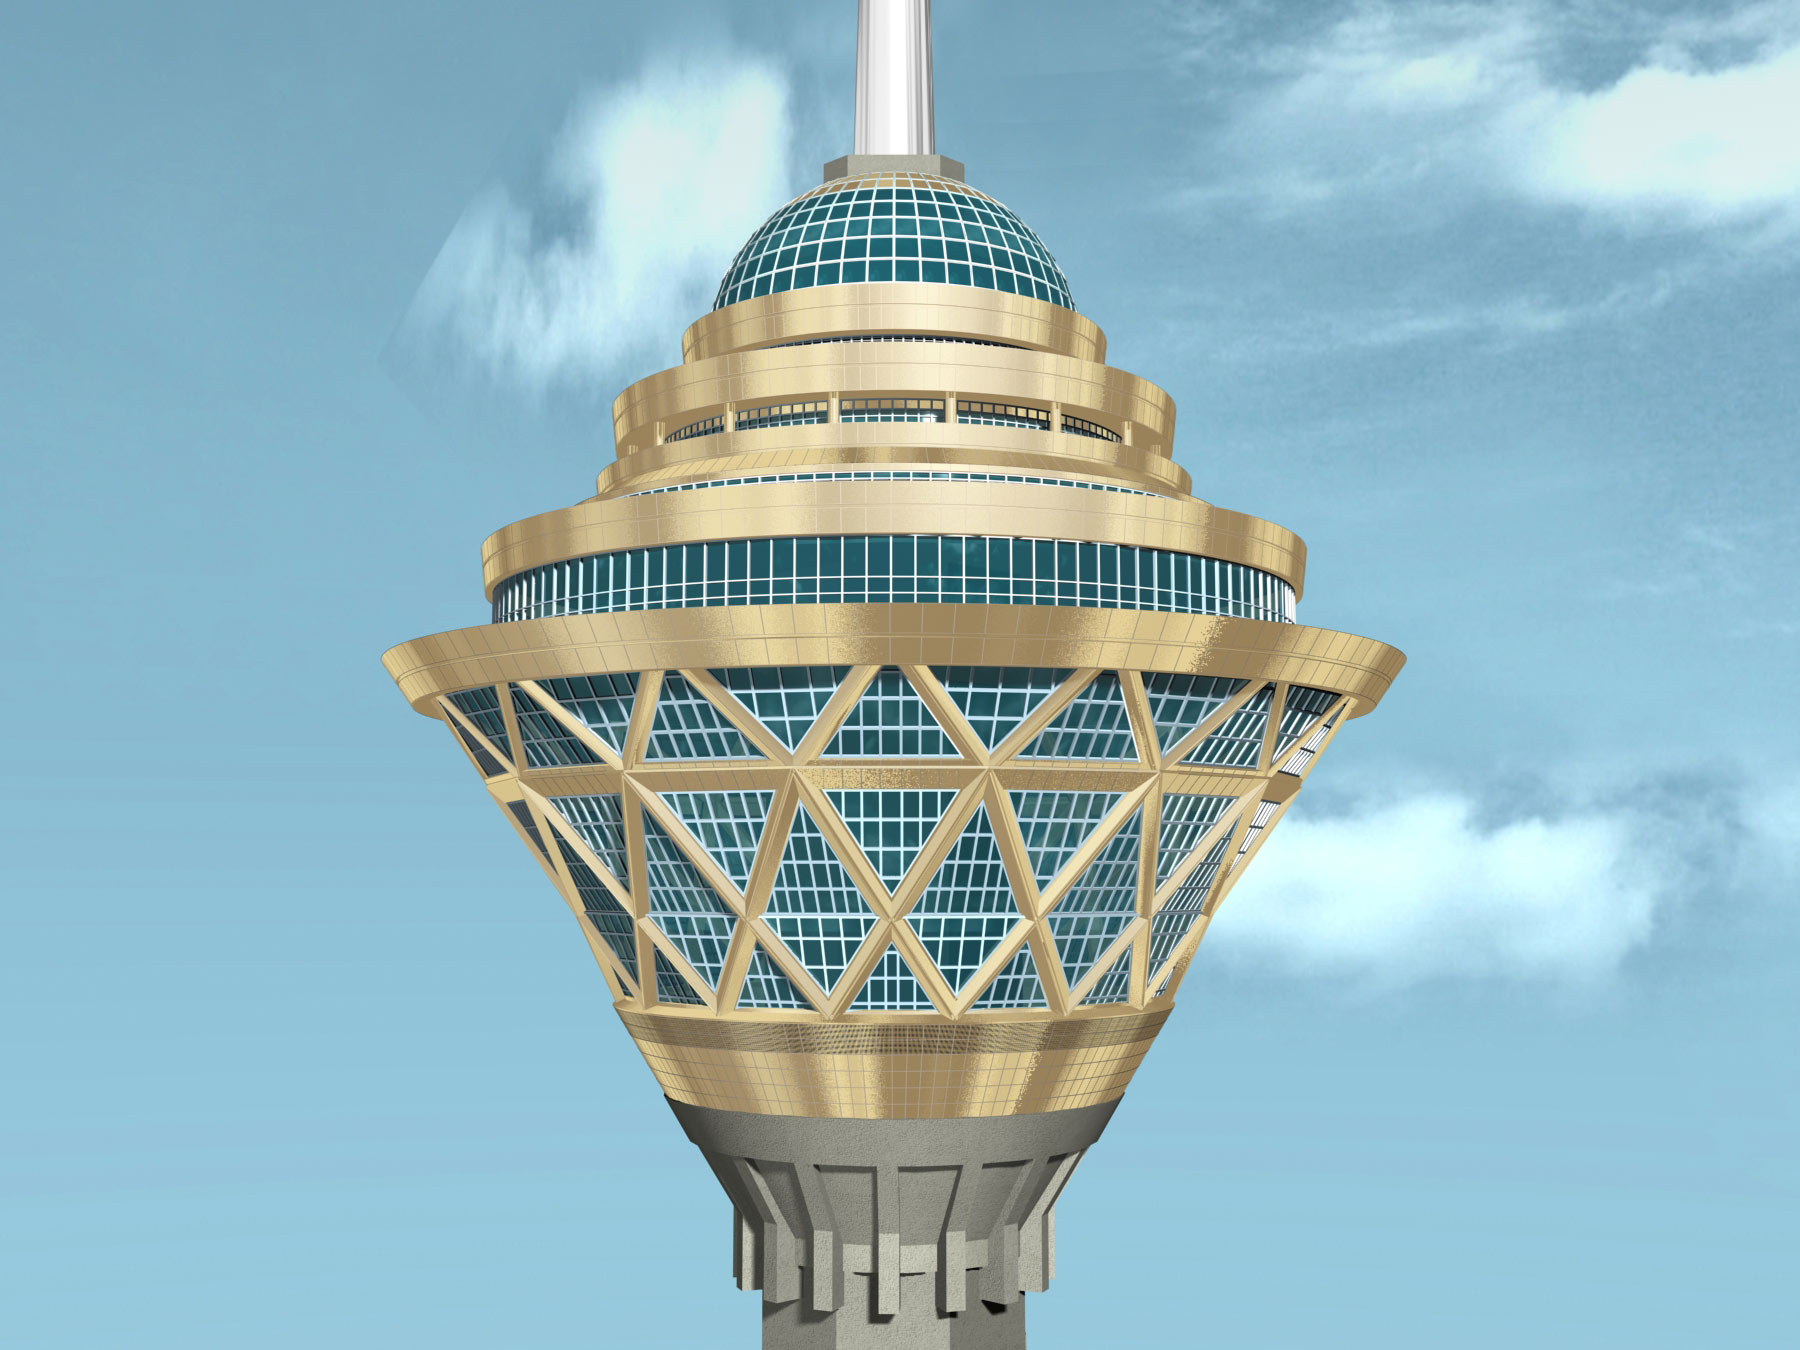 //bayanbox.ir/view/2542703047786959122/milad-tower.jpg